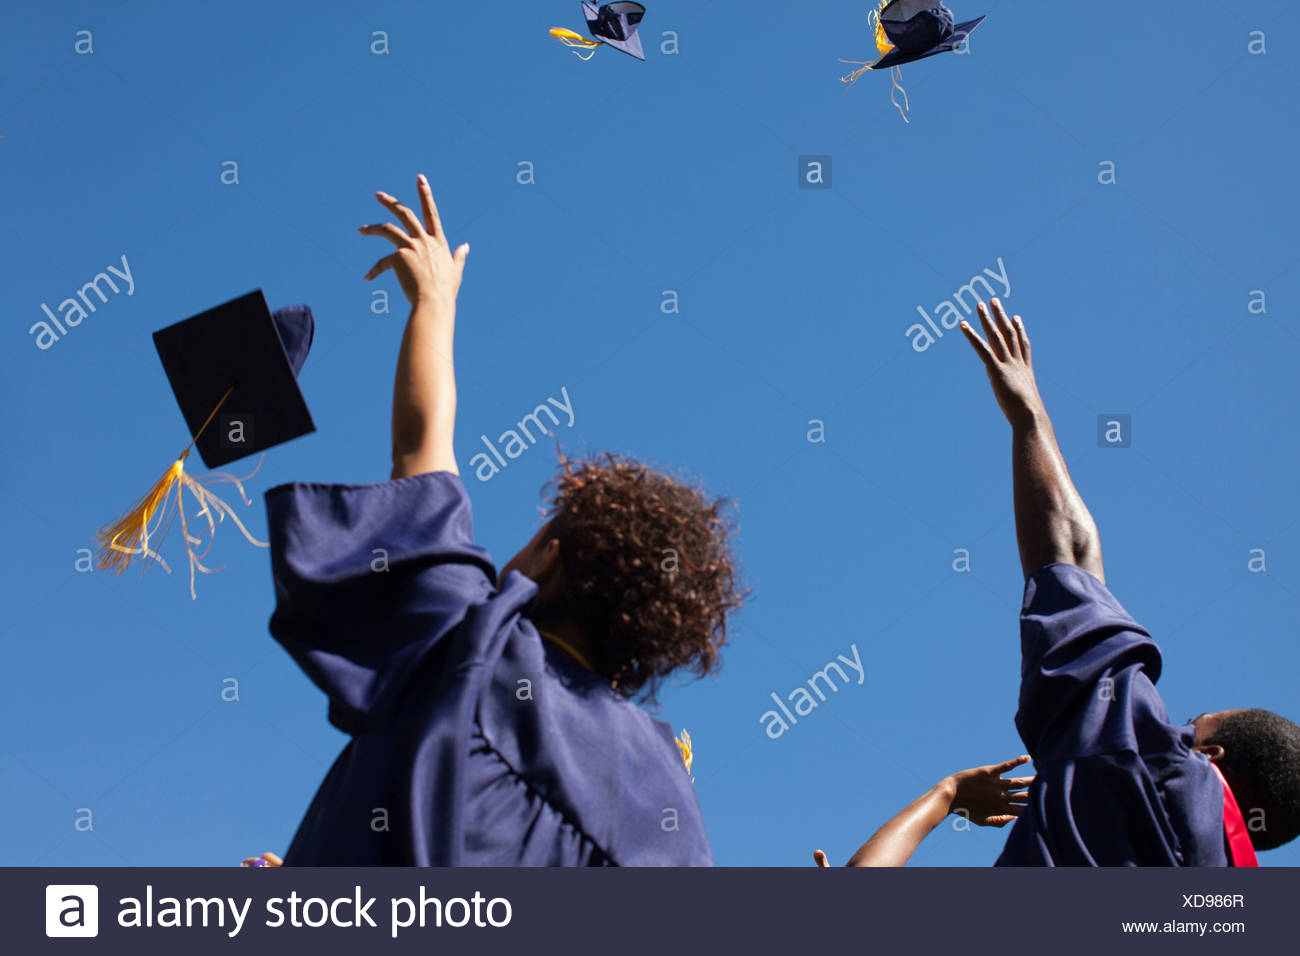 Graduates throwing caps in air outdoors Stock Photo